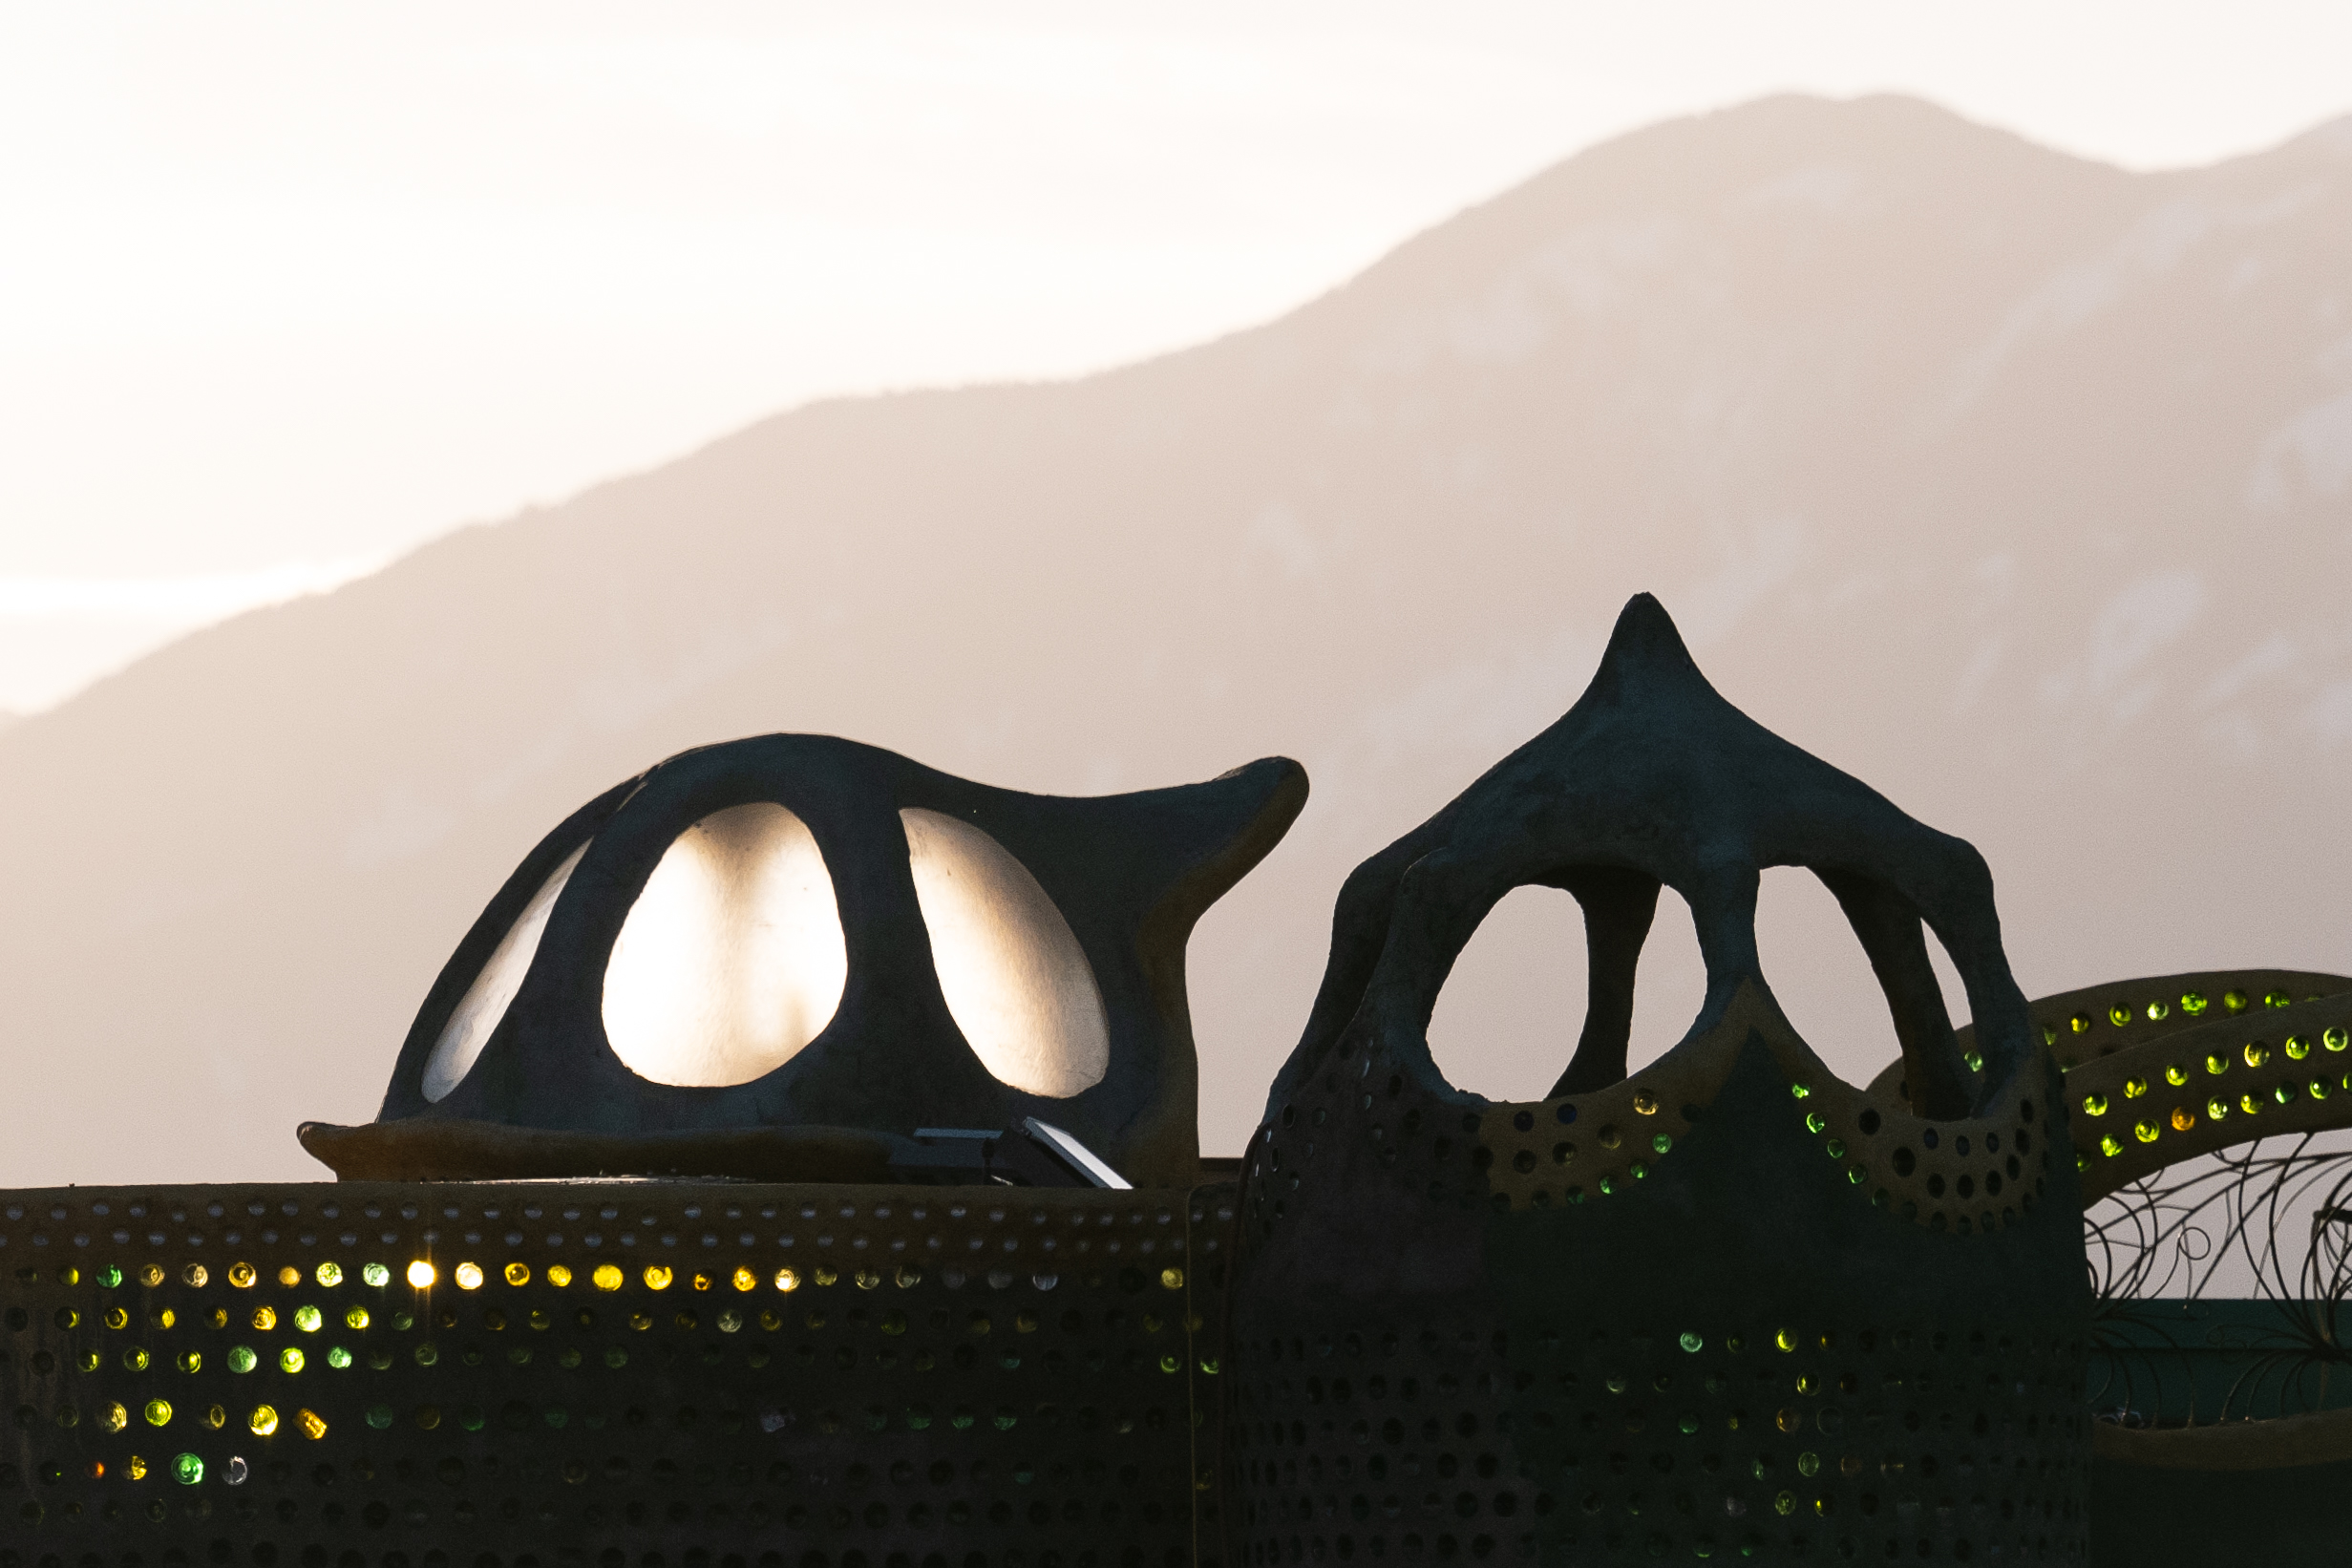 taos earthships - This off-grid community of curious dwellings, aka the Earthship, outside Taos, New Mexico draws travel lovers, investors, and environmentalists from around the world.